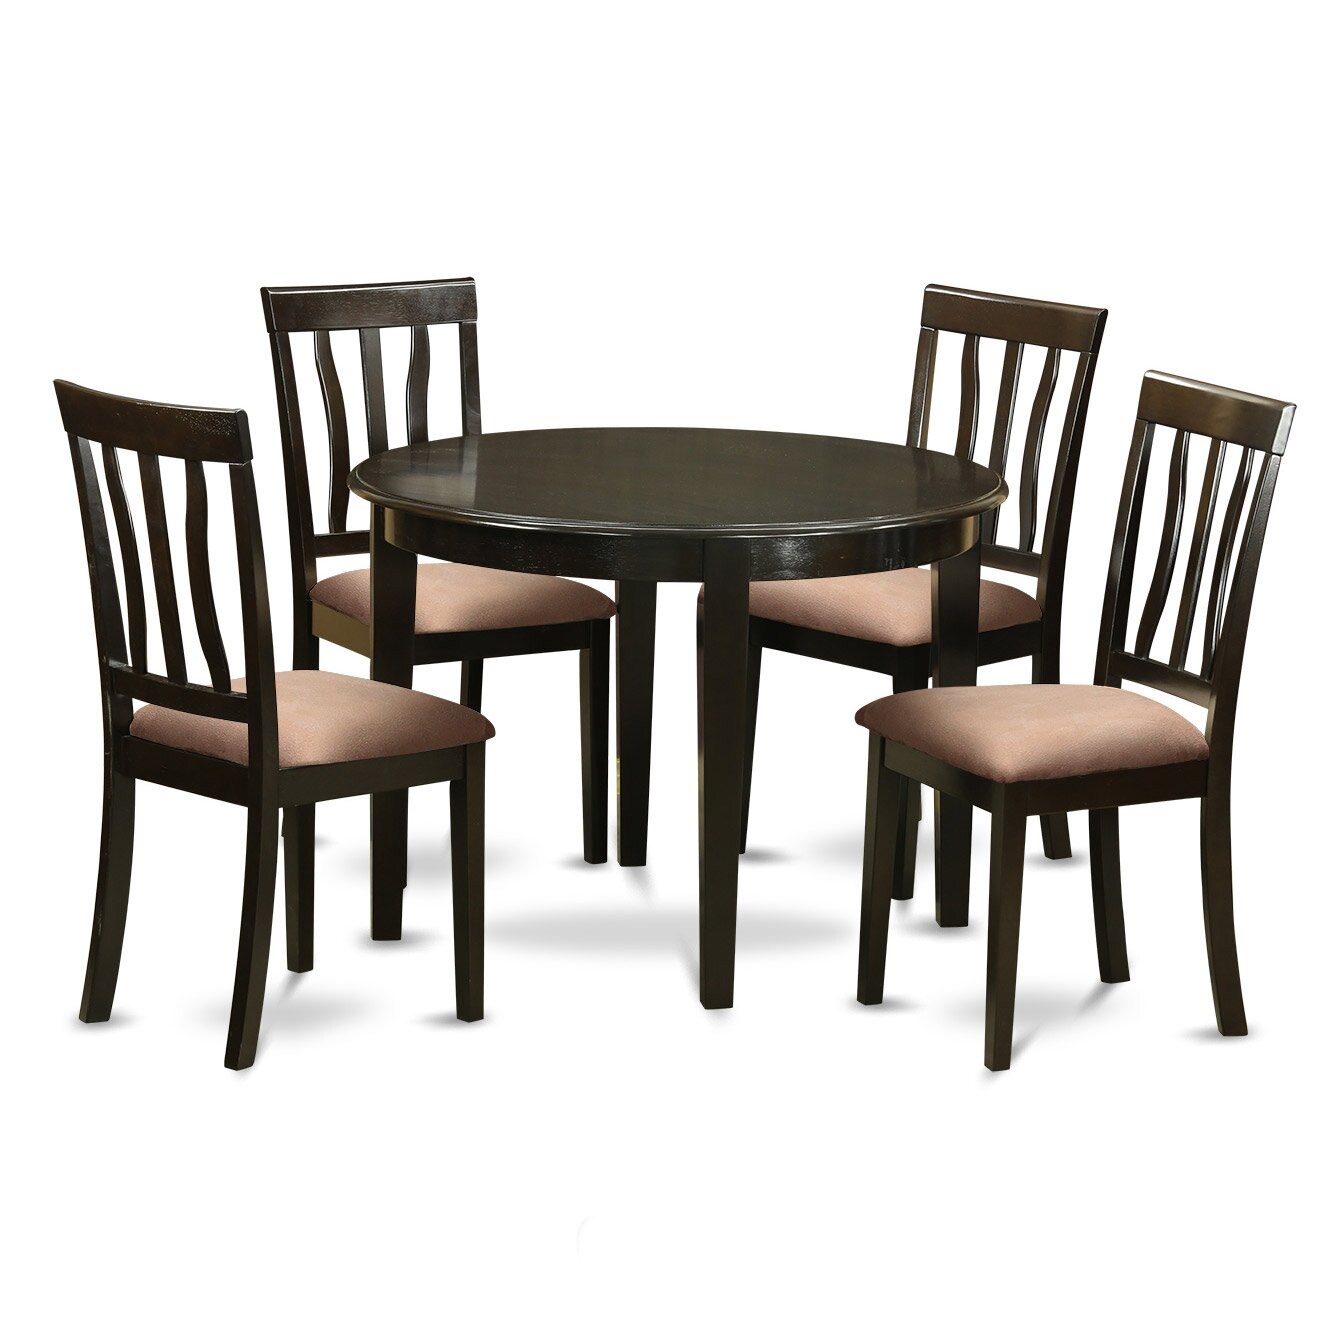 Wooden importers boston 5 piece dining set wayfair for Kitchen chairs